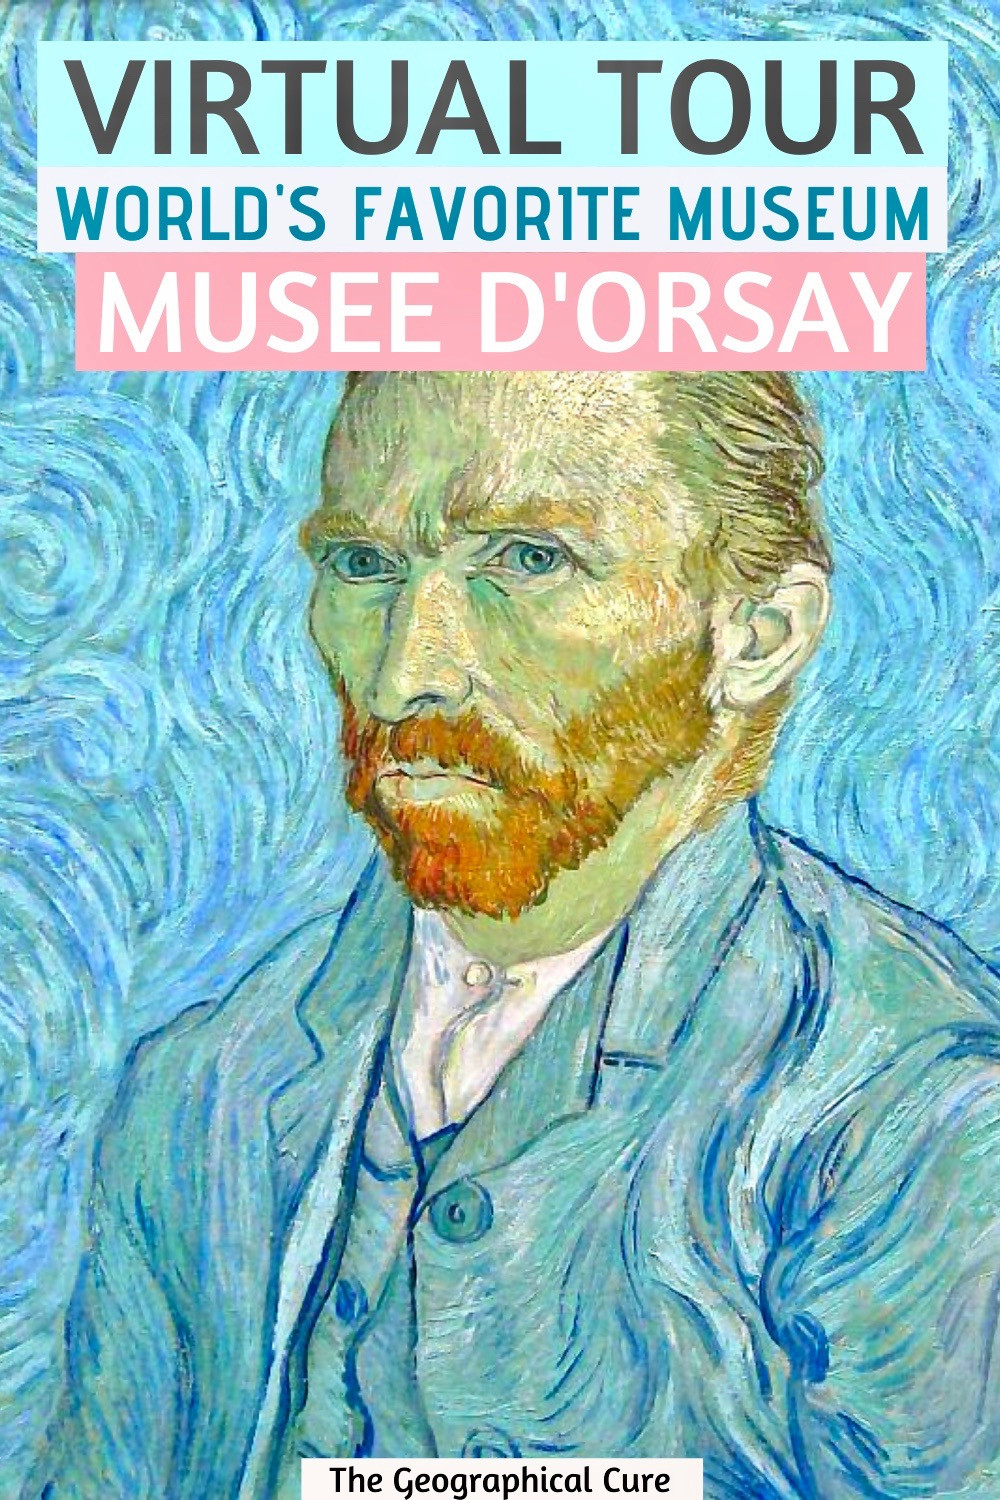 Guide to the Musee d'Orsay in Paris: Tour of 25 Artworks